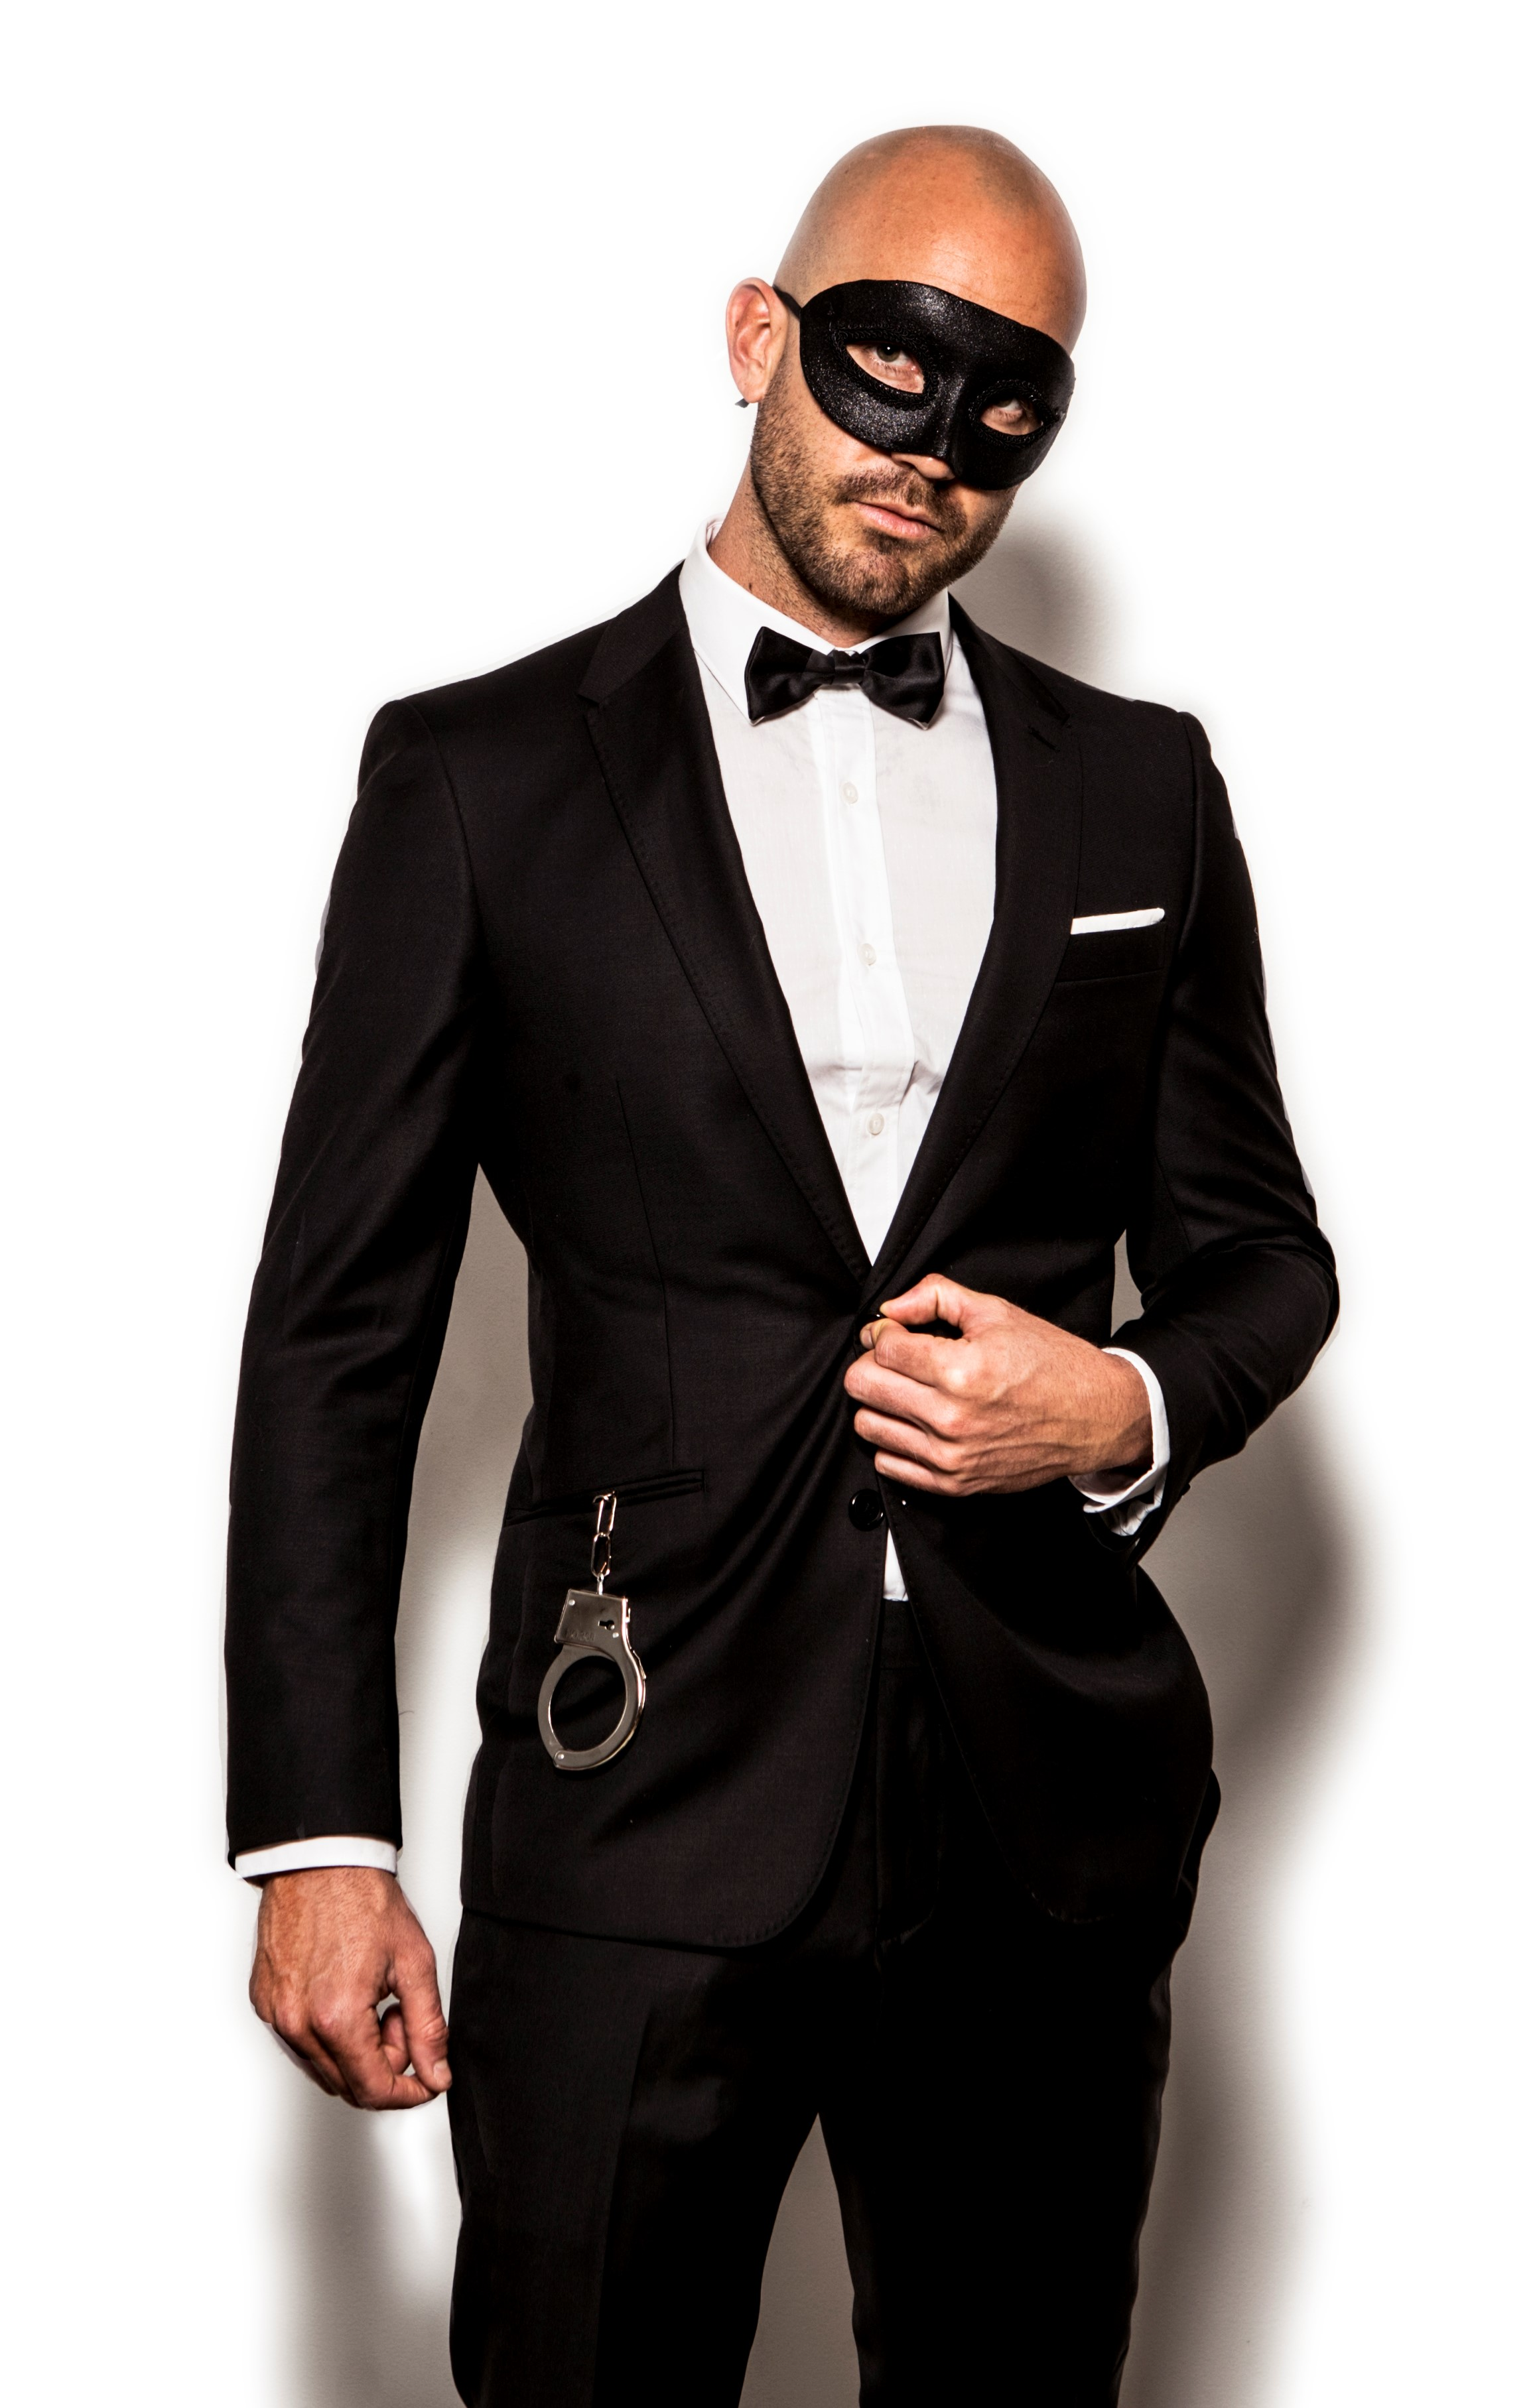 hire a fifty shades of grey sezy tall male stripper in Brisbane city and fortitude valley